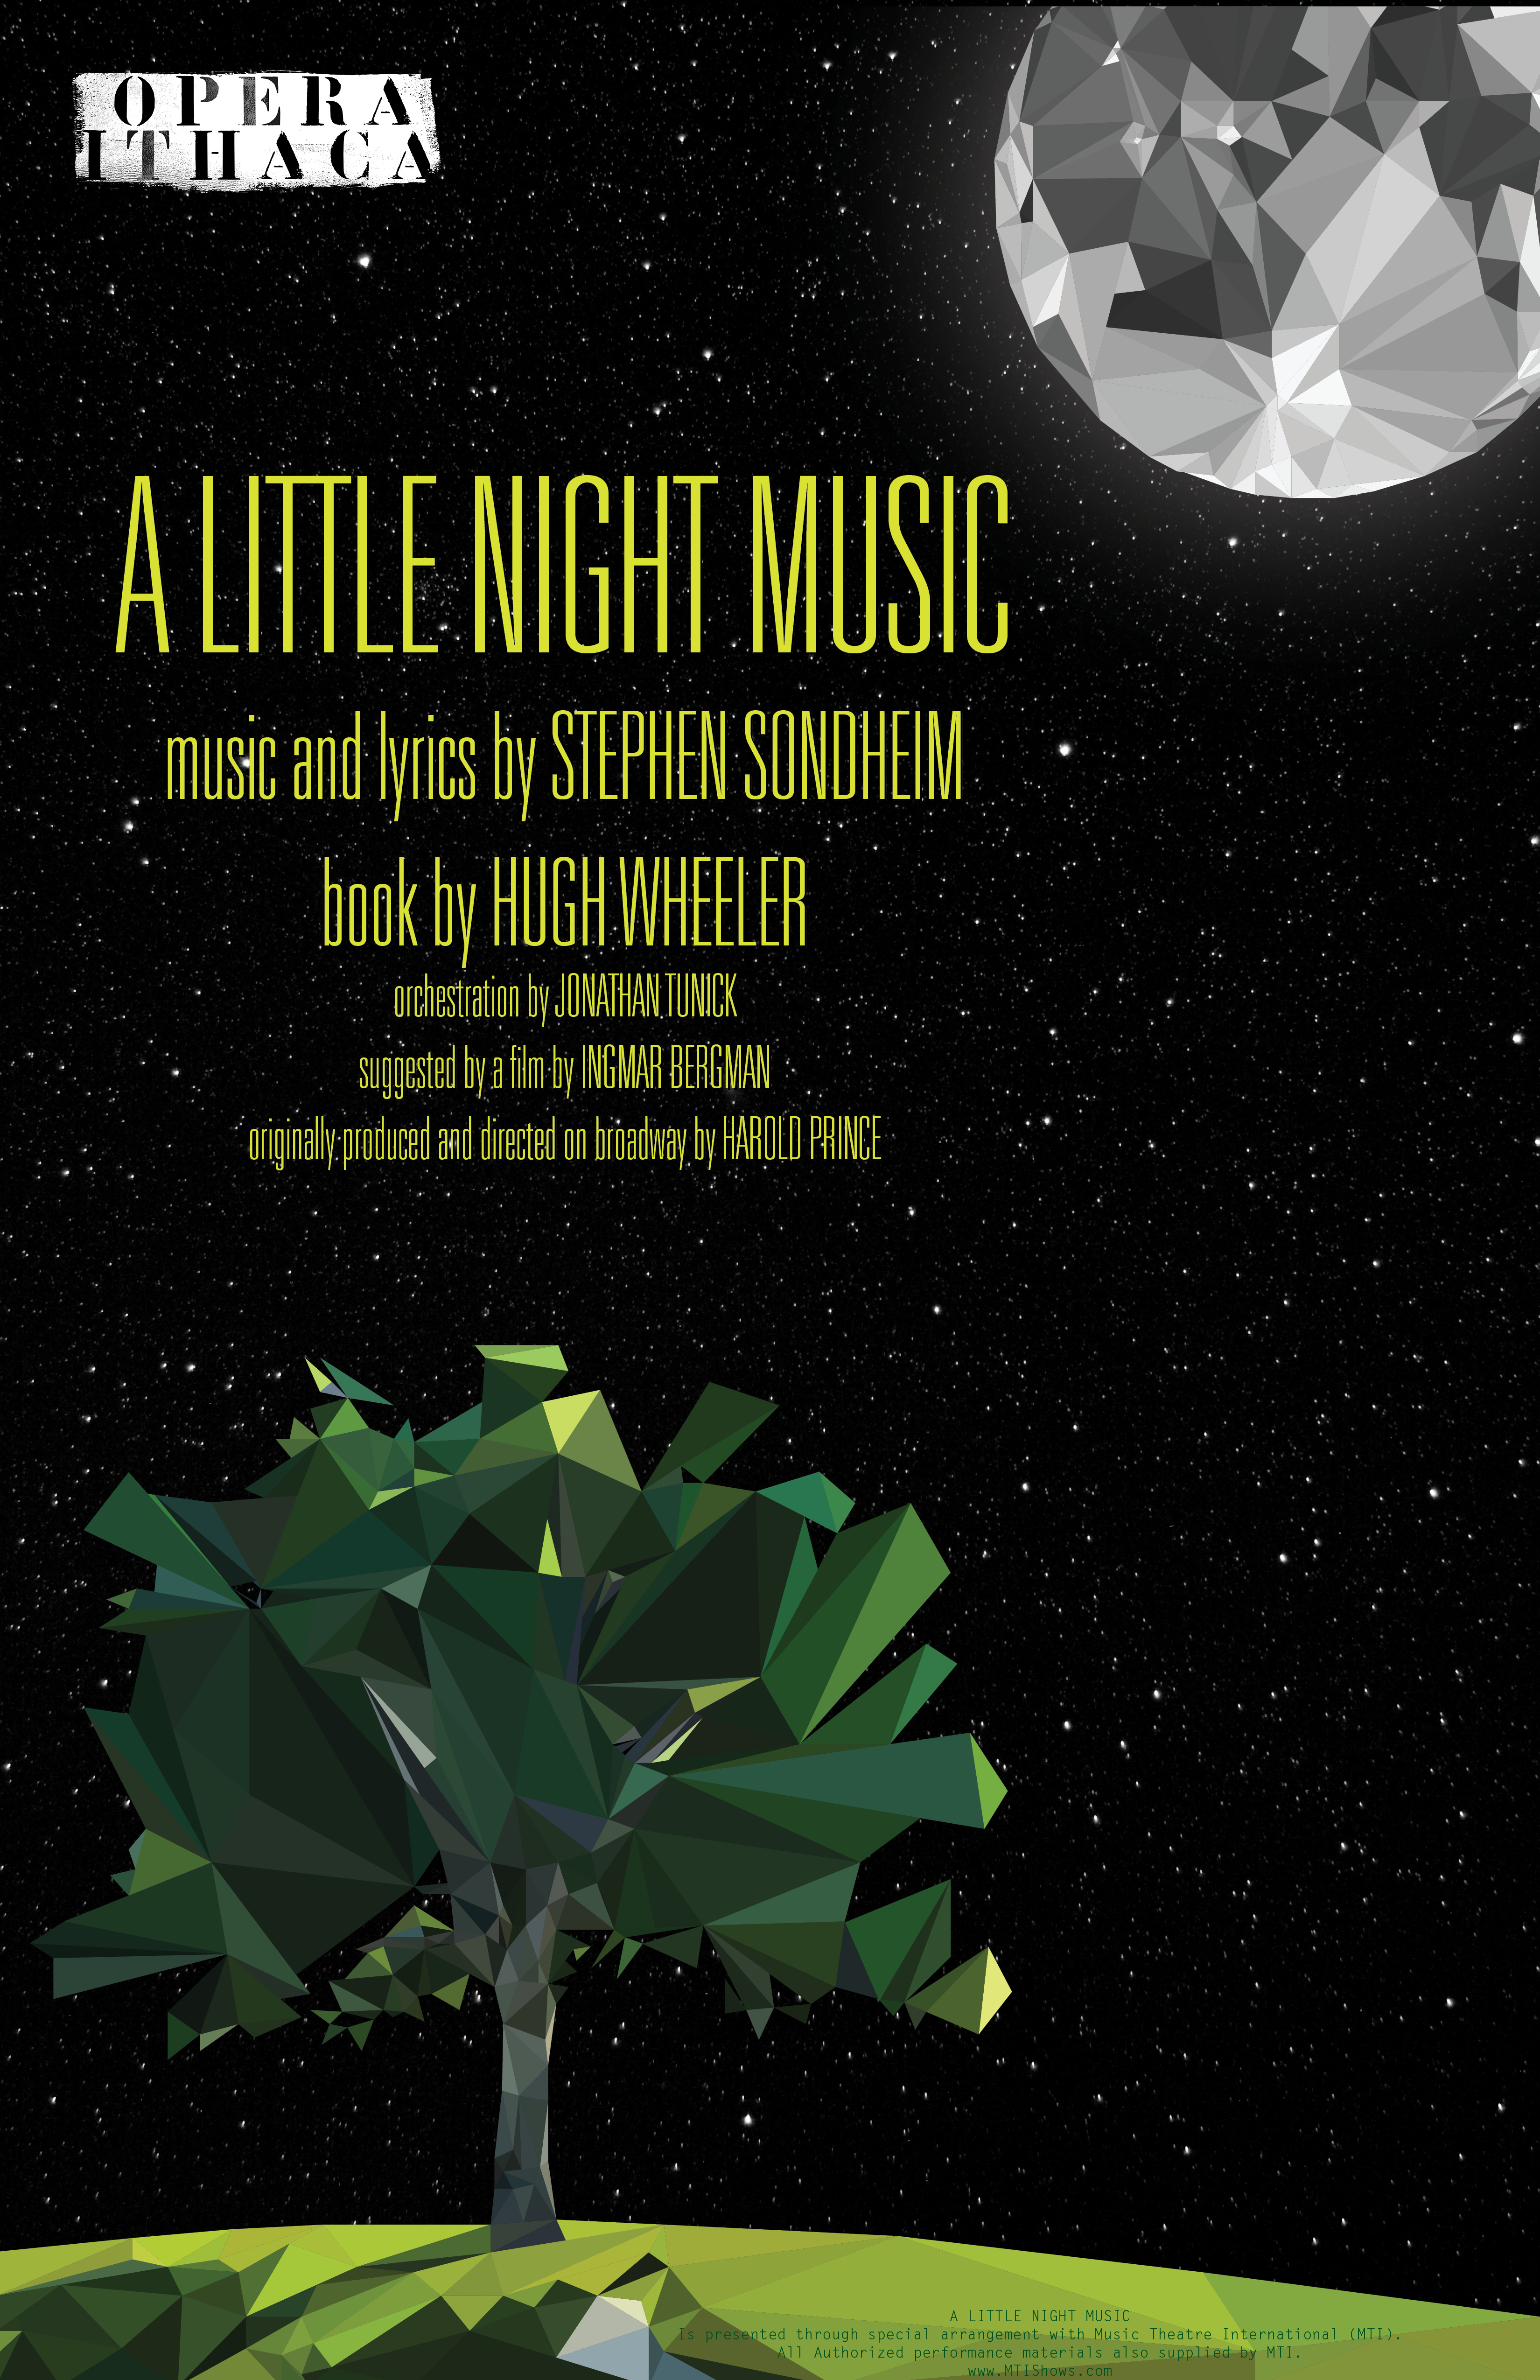 Poster Shows Tree Standing In Moonlight Promoting Opera Ithacas A Little Night Music